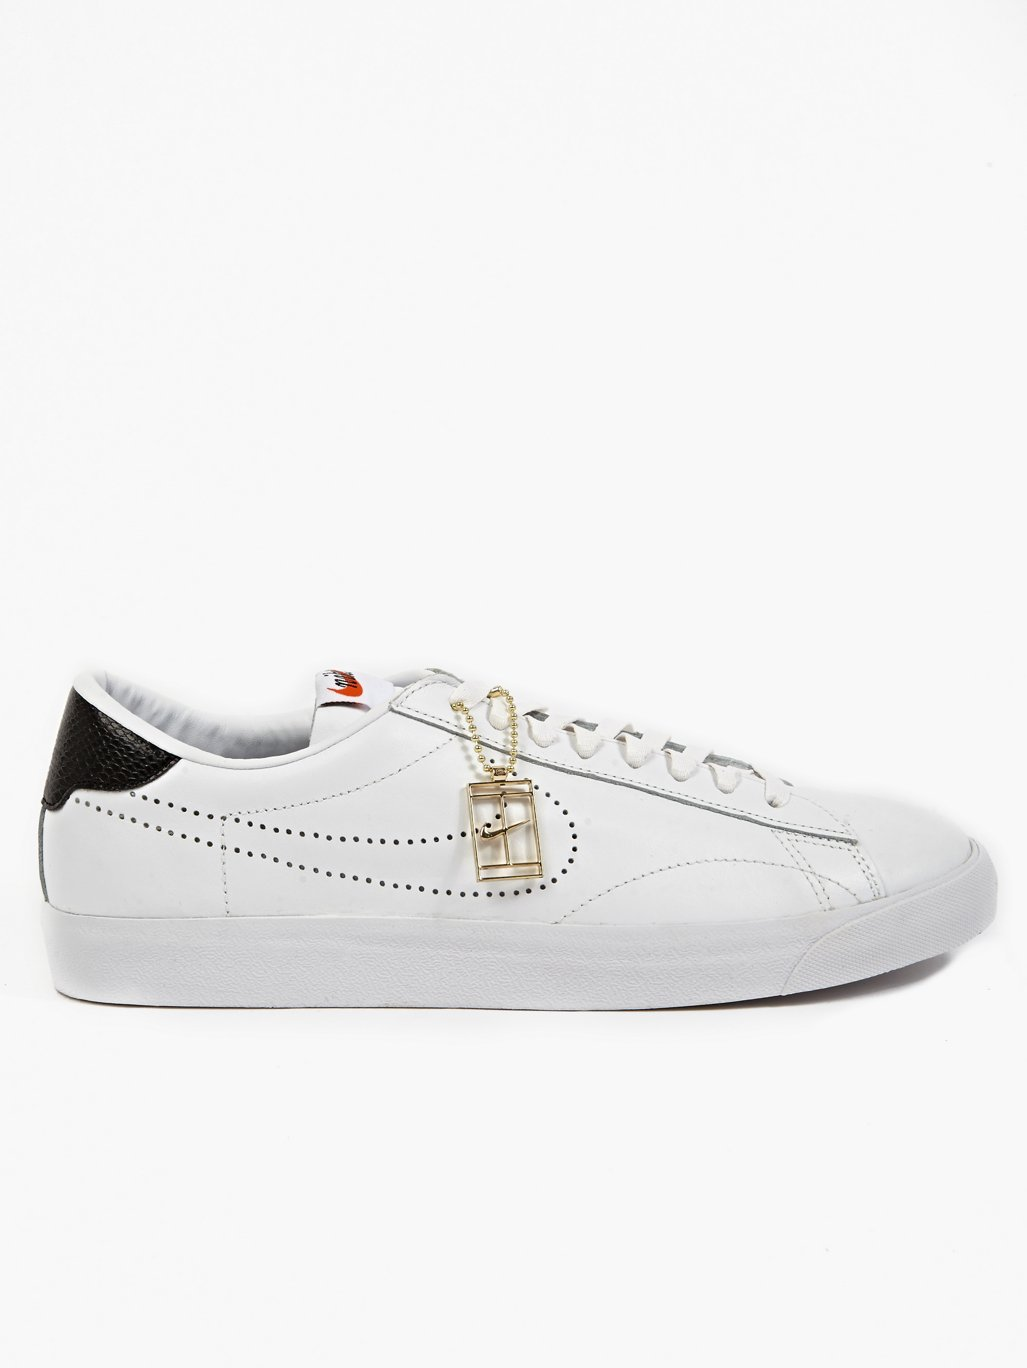 Nike X Fragment White Tennis Classic SP Sneakers